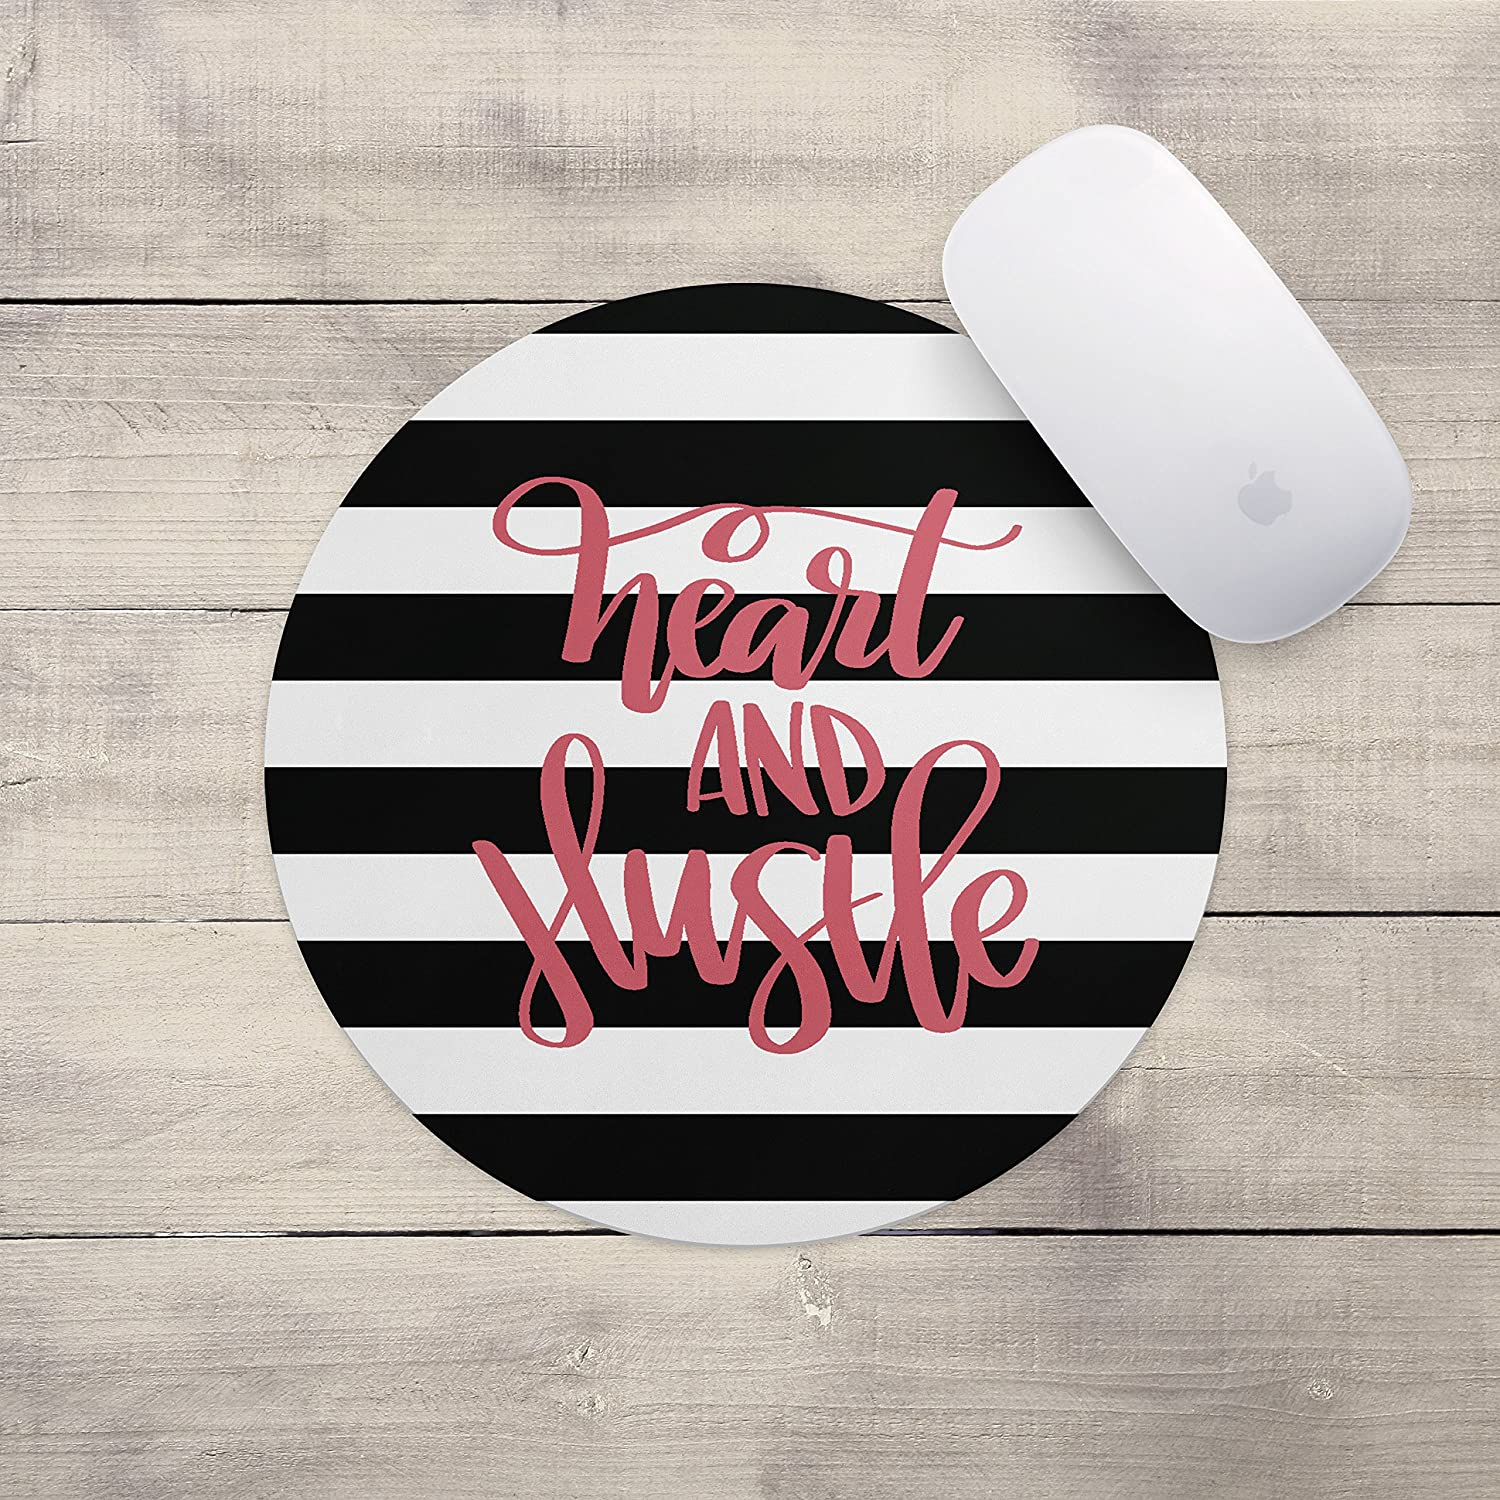 Neoprene Inspirational Quote Mousepad Computer Accessories Home Office Heart and Hustle Mouse Pad Office Space Decor